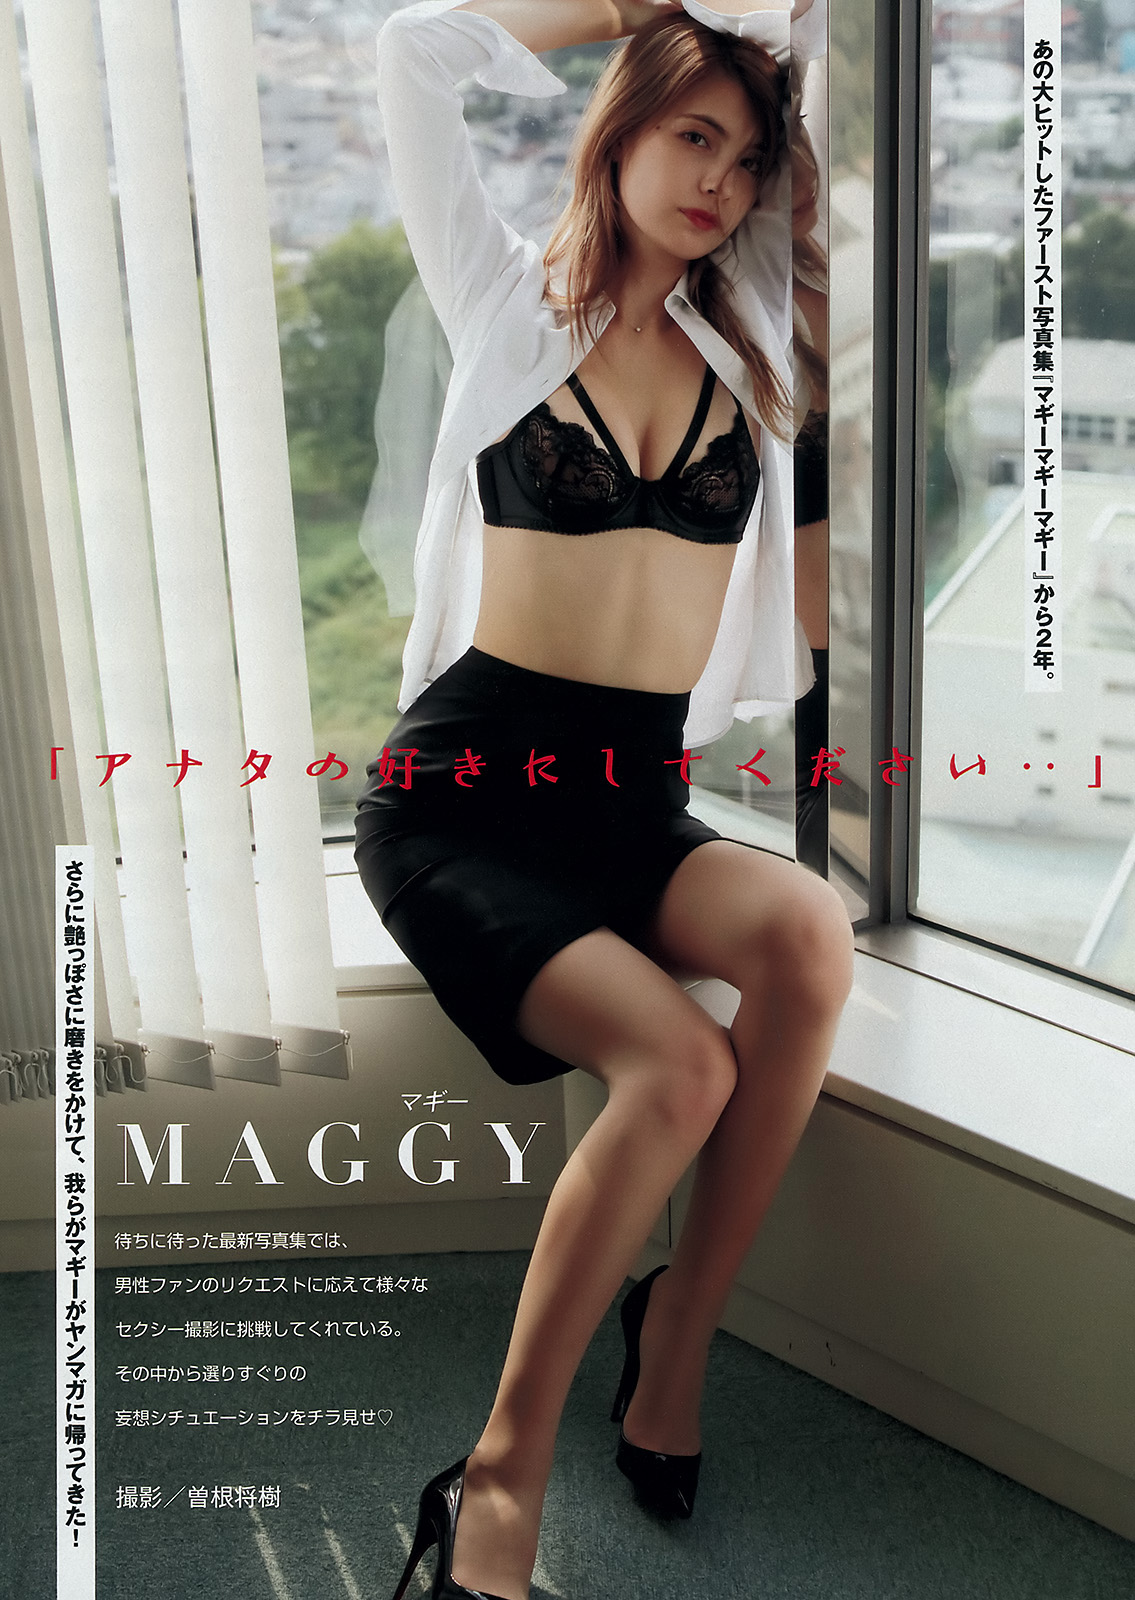 Maggy マギー Young Magazine 2016 No 2 Pictures